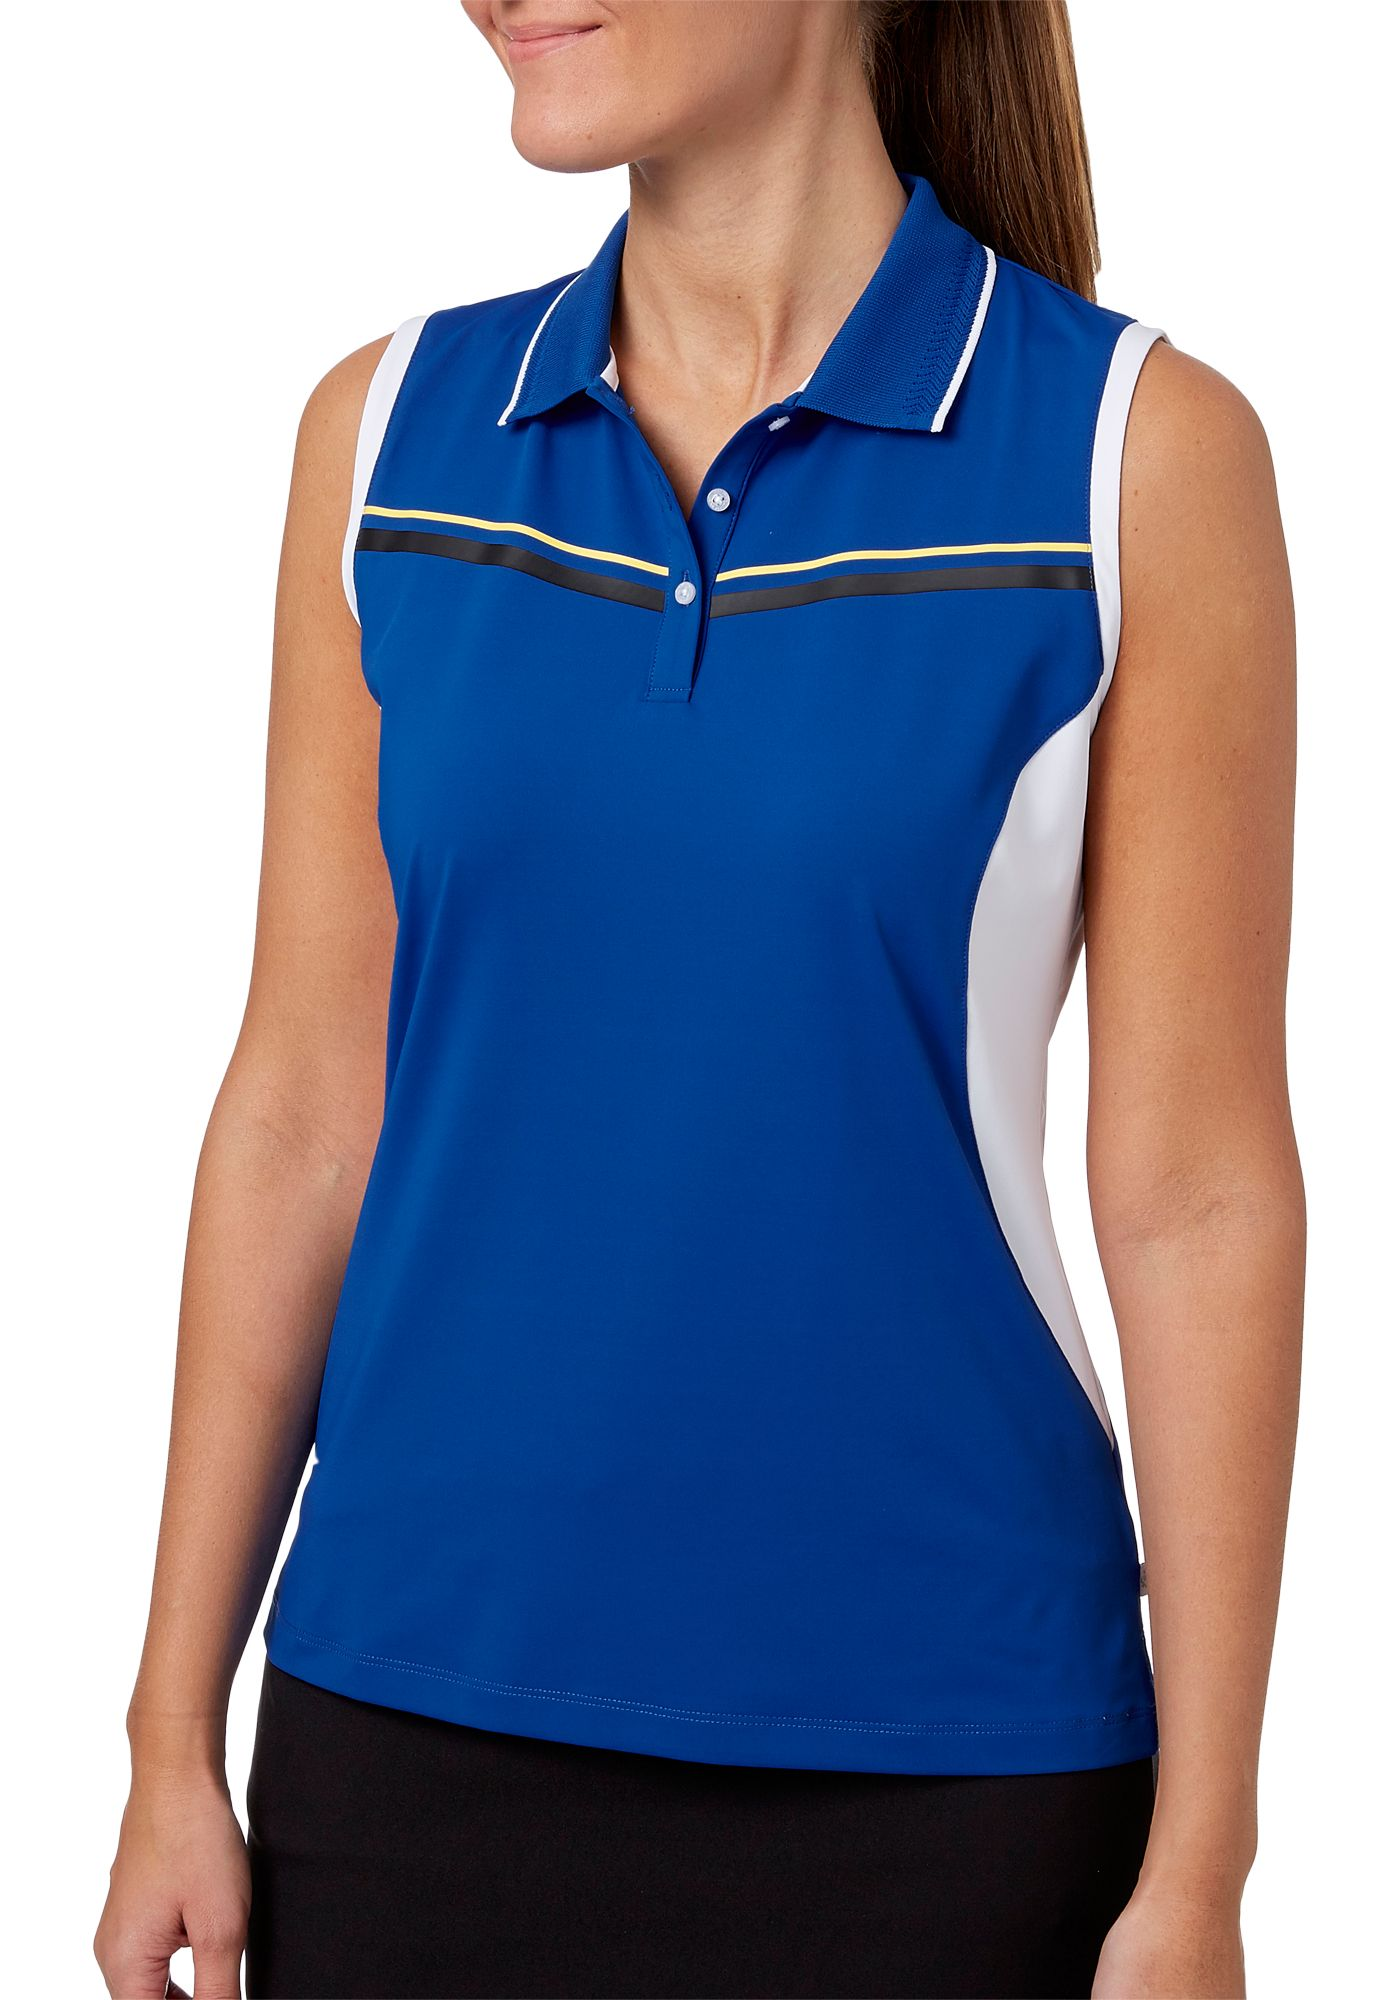 Lady Hagen Women's Winter's Night Collection Sleeveless Golf Polo